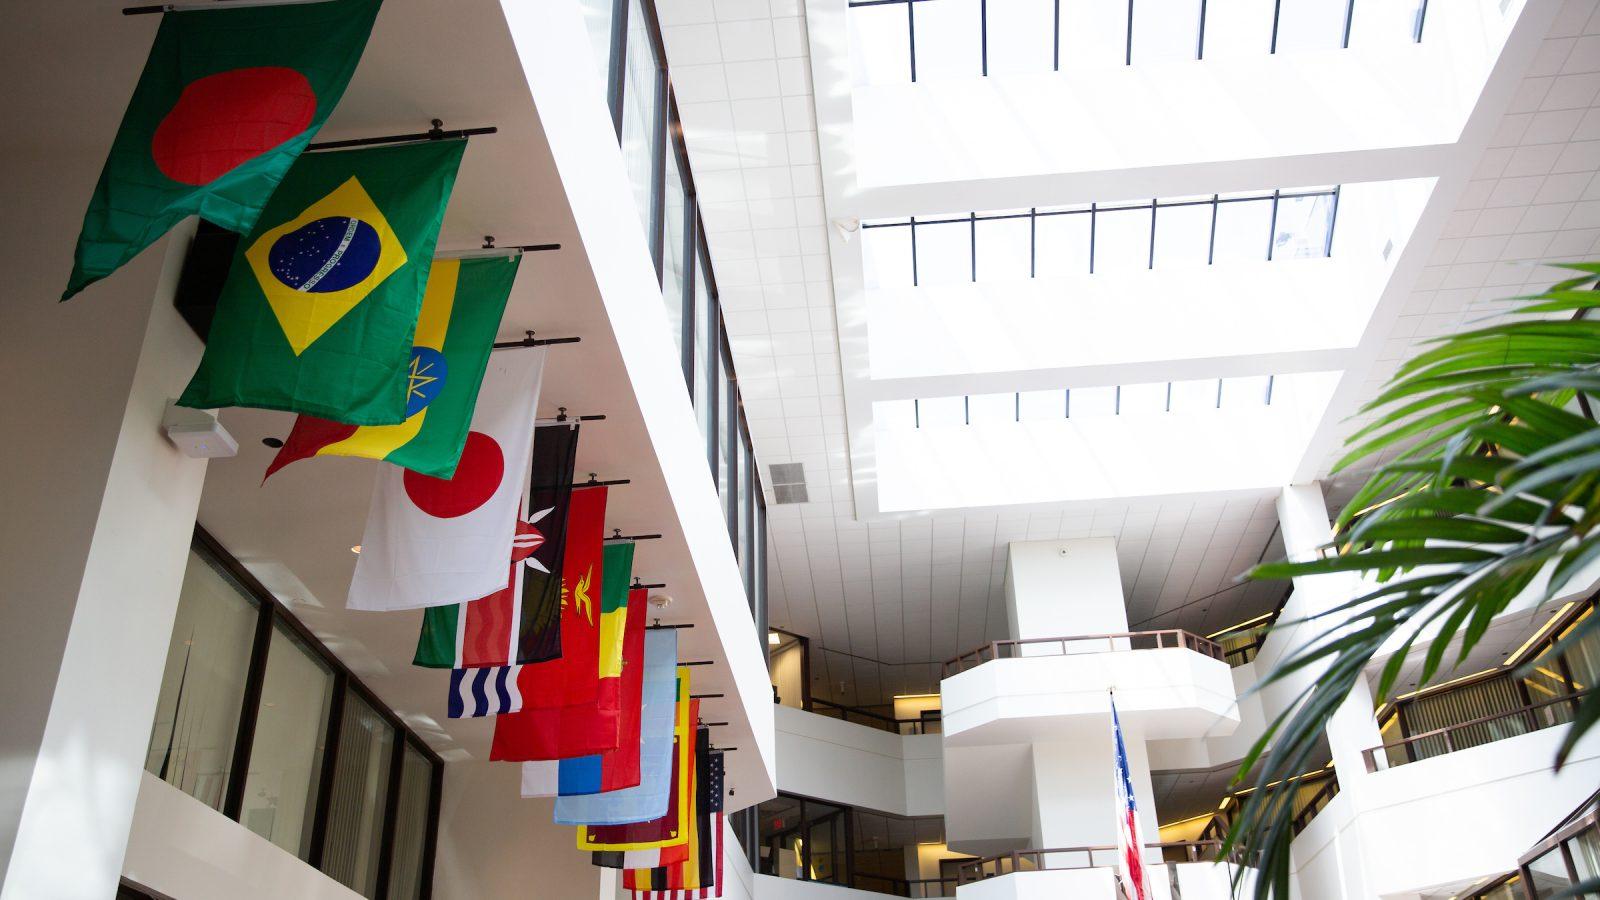 A series of Flags in the atrium of the ICC